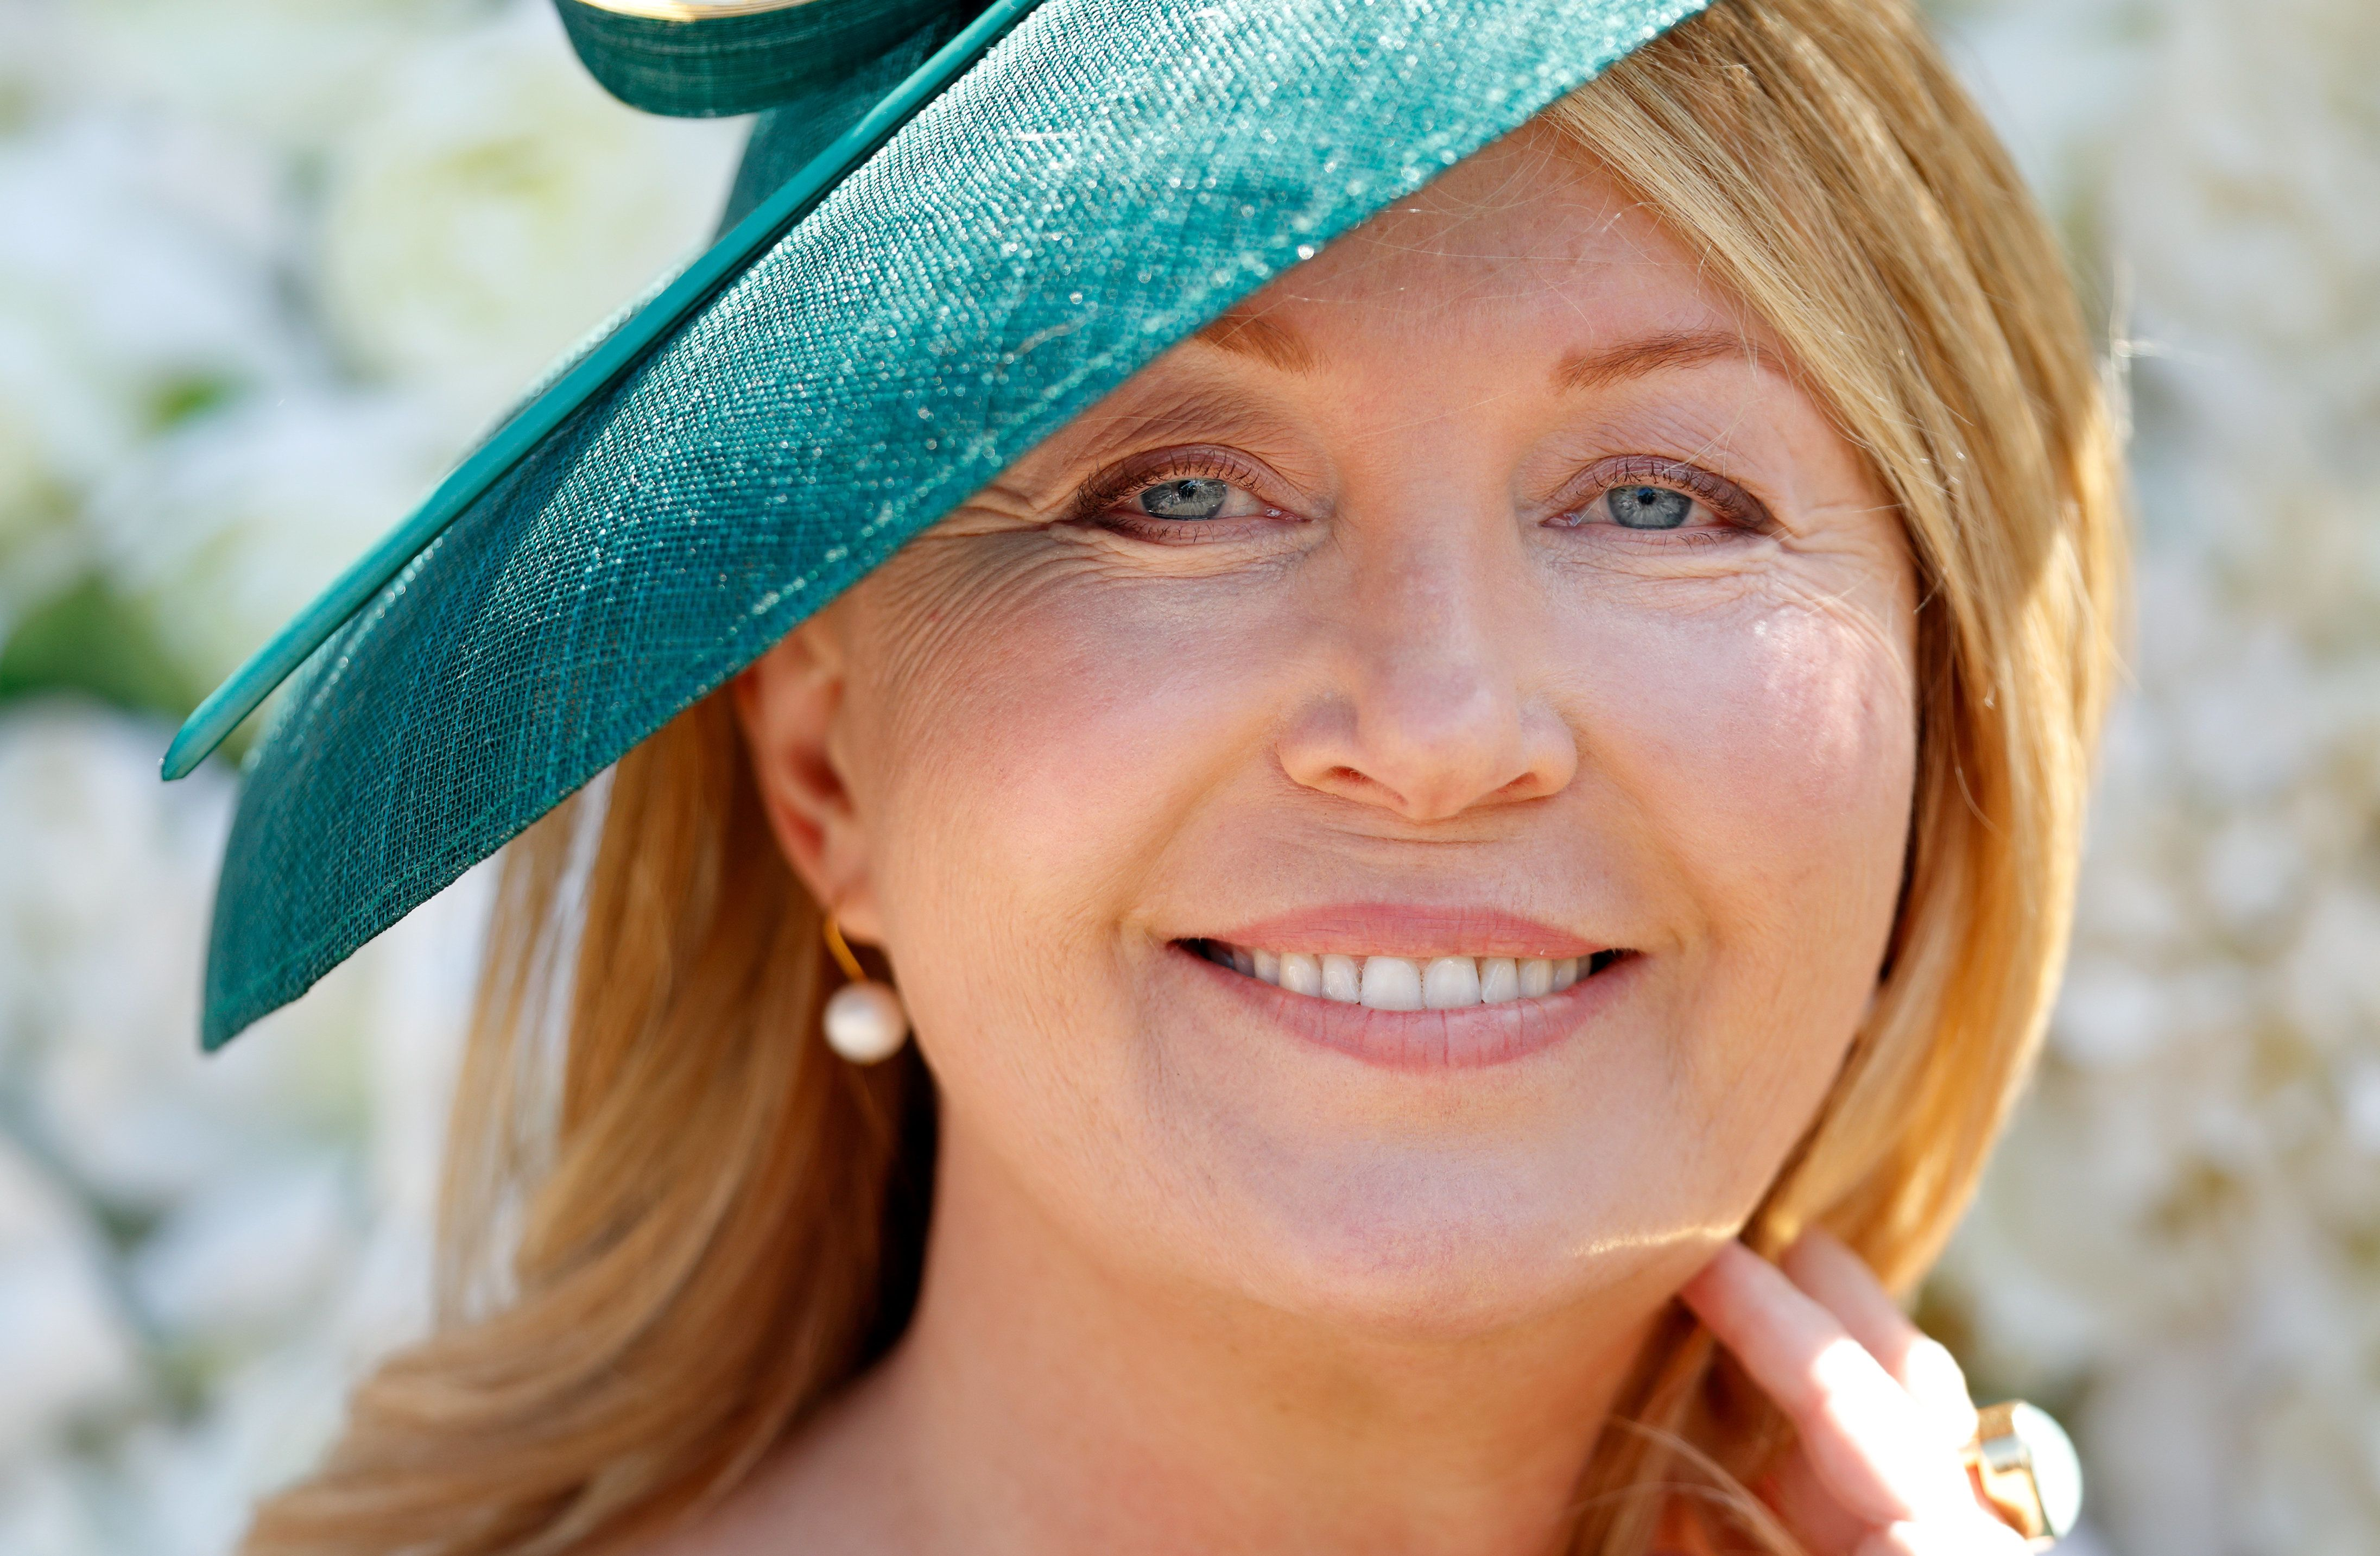 Here's What You Need To Know About Fibromyalgia, After Kirsty Young Reveals Diagnosis